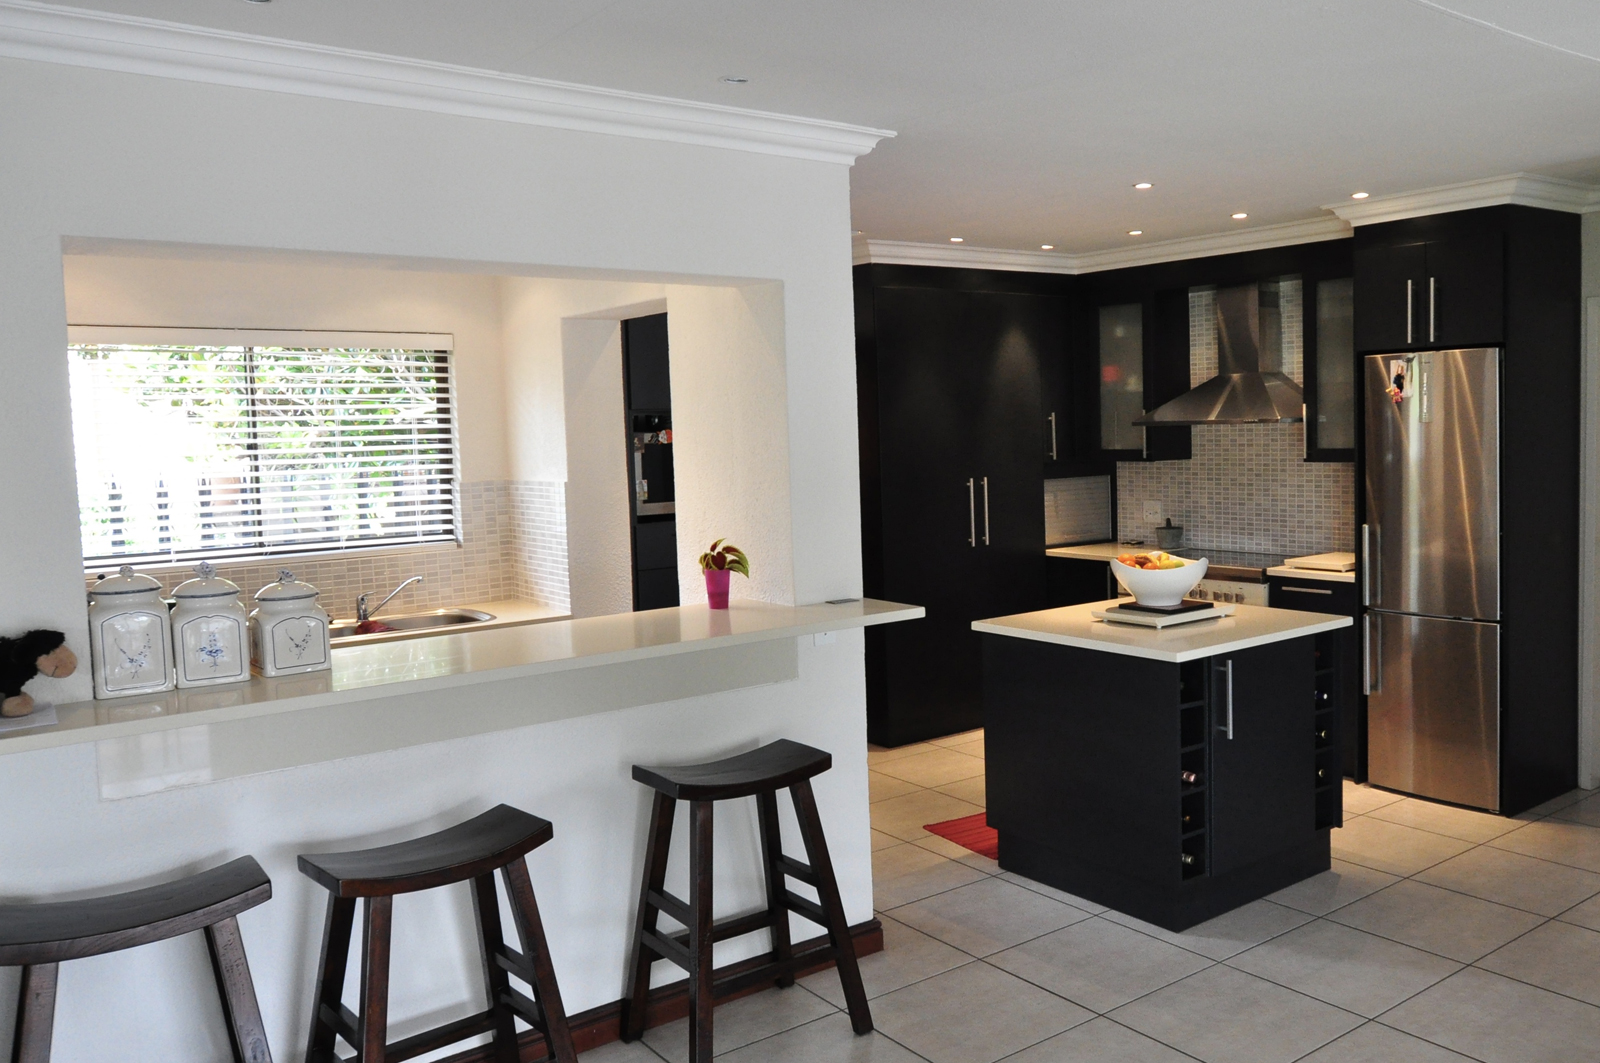 Kitchen Renovations and Repairs in Gauteng